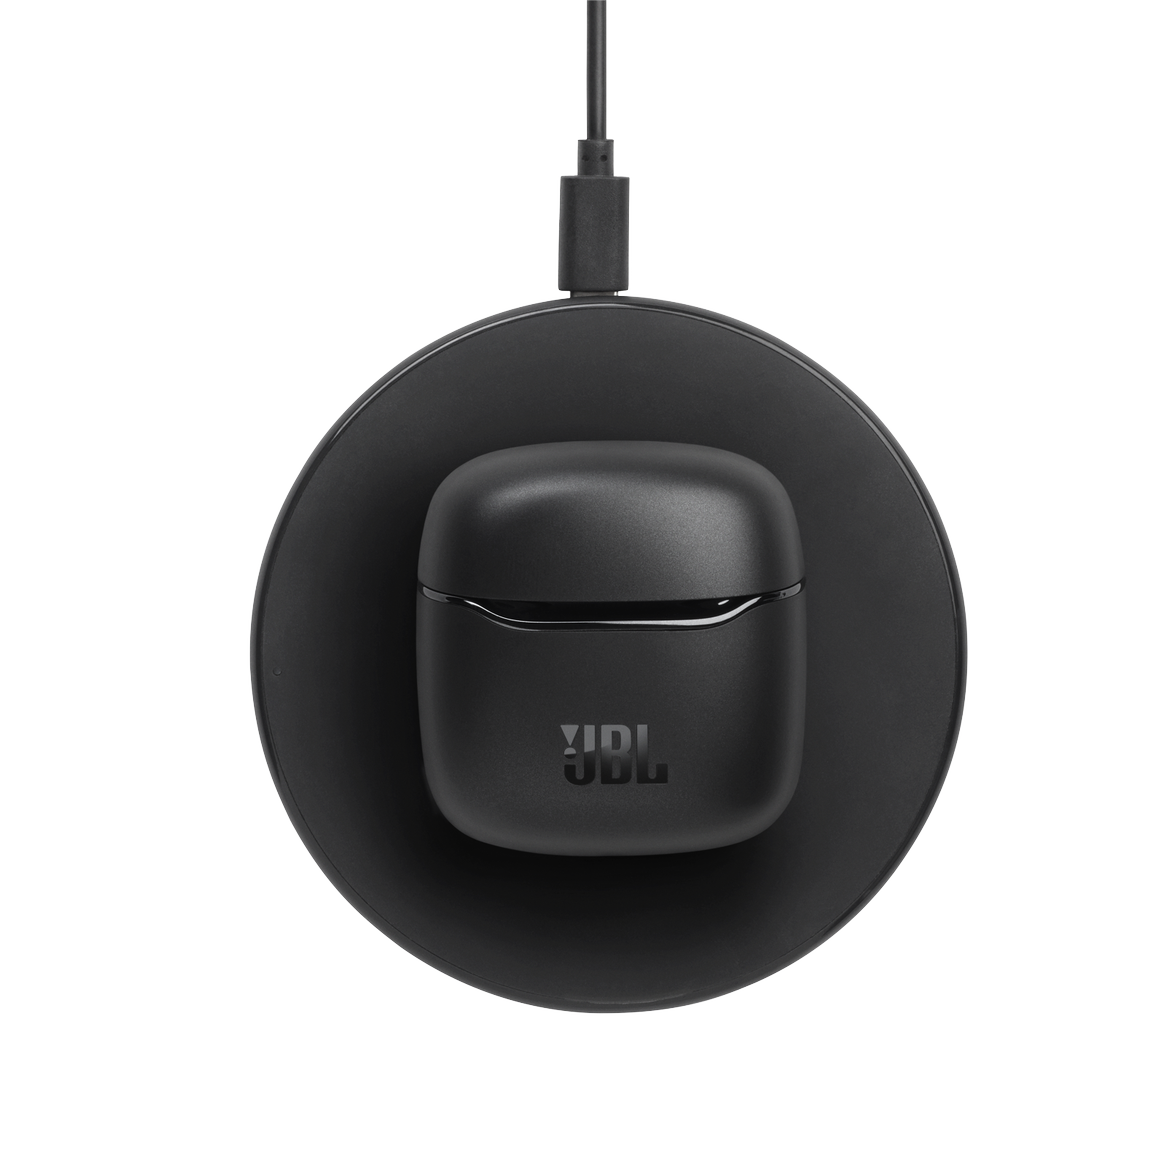 JBL_Tour Pro TWS_Product Image_Charger